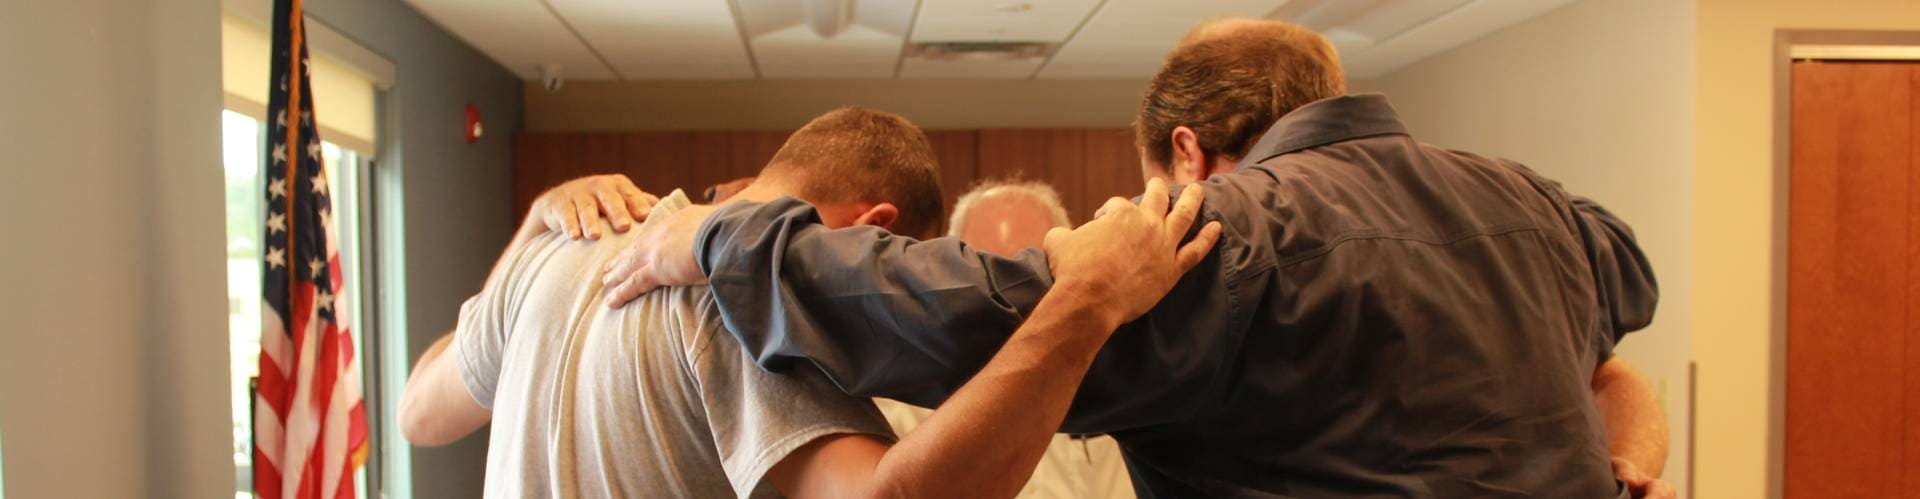 Group prayer session - 5 men lead by counselor